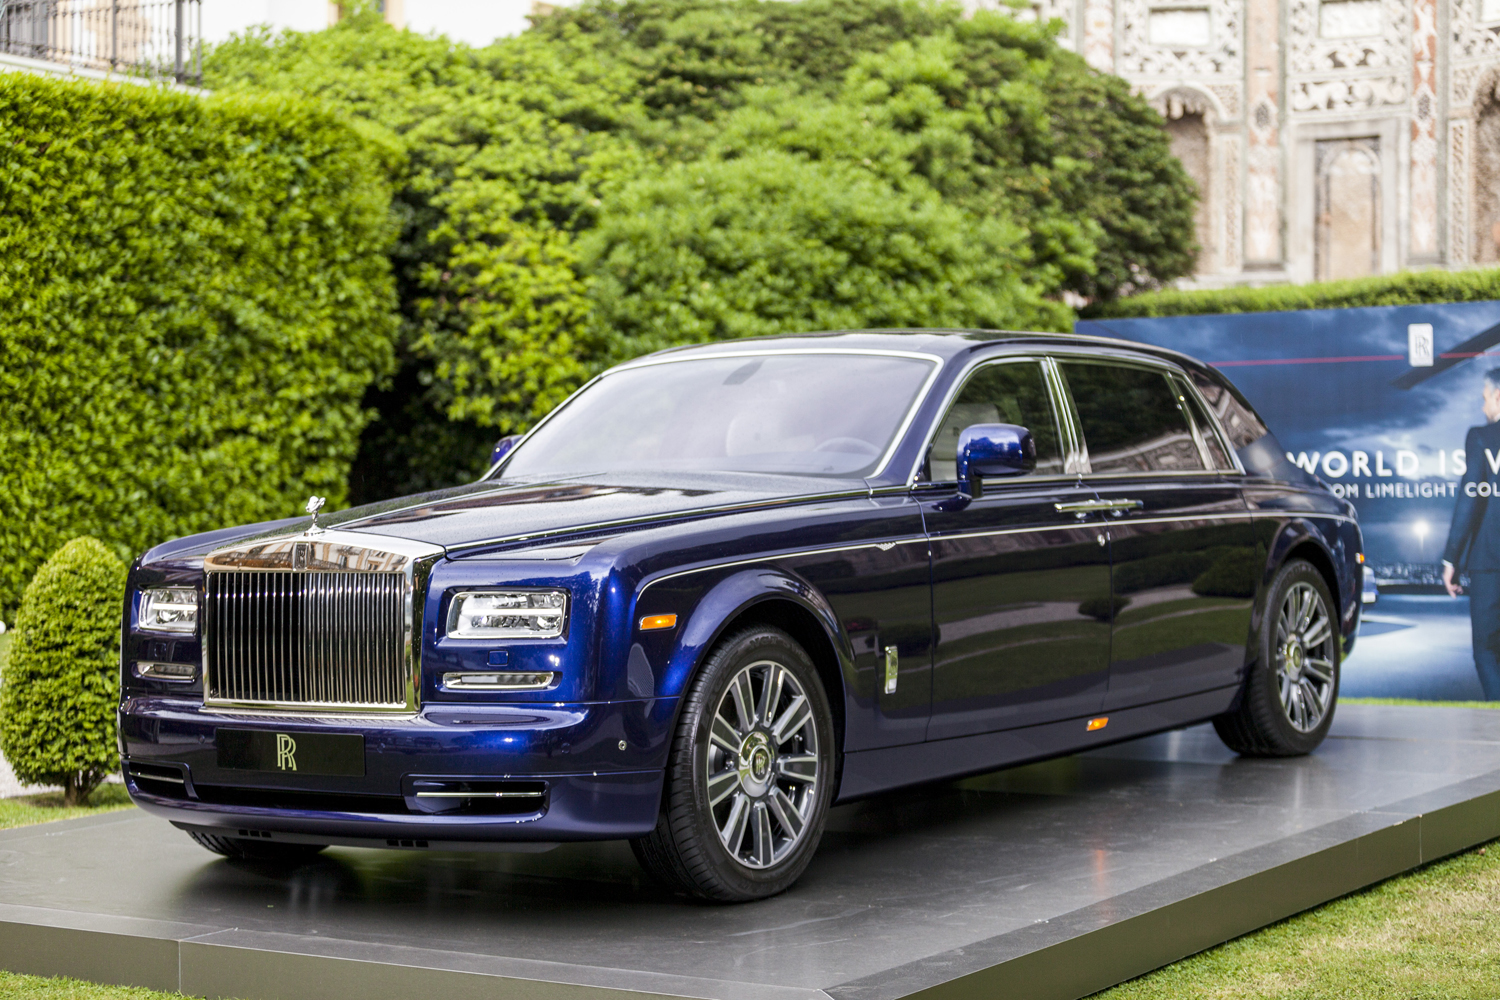 villa d 39 este 2015 rolls royce phantom limelight collection. Black Bedroom Furniture Sets. Home Design Ideas